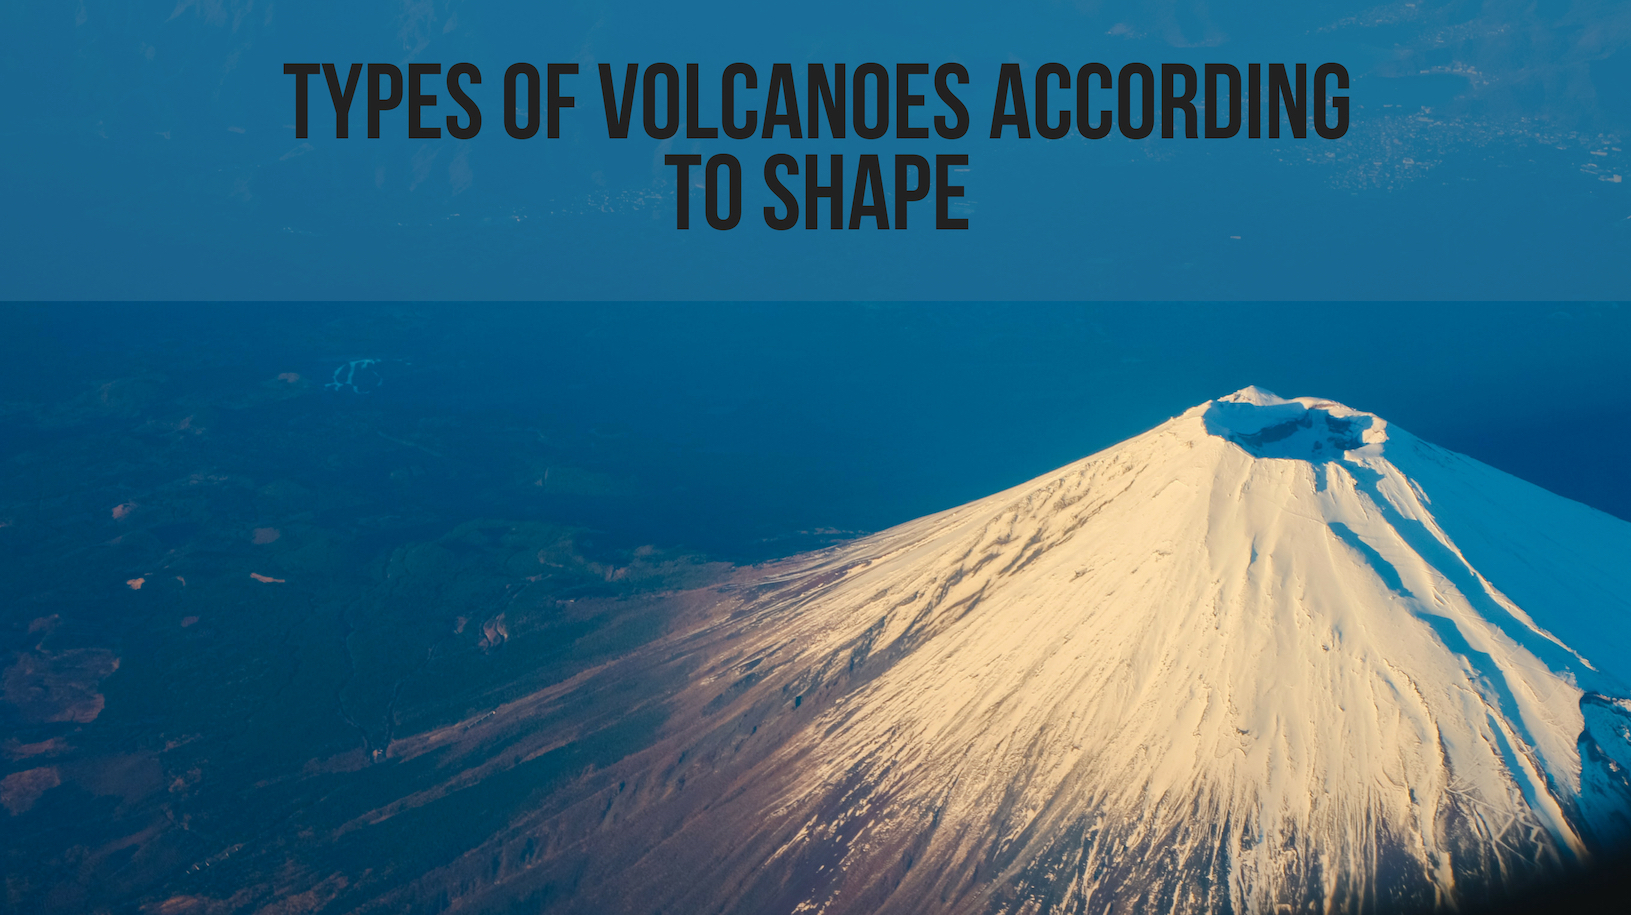 Volcanoes are very dangerous clipart stock 4 Different Types of Volcanoes According to Shape | Owlcation stock